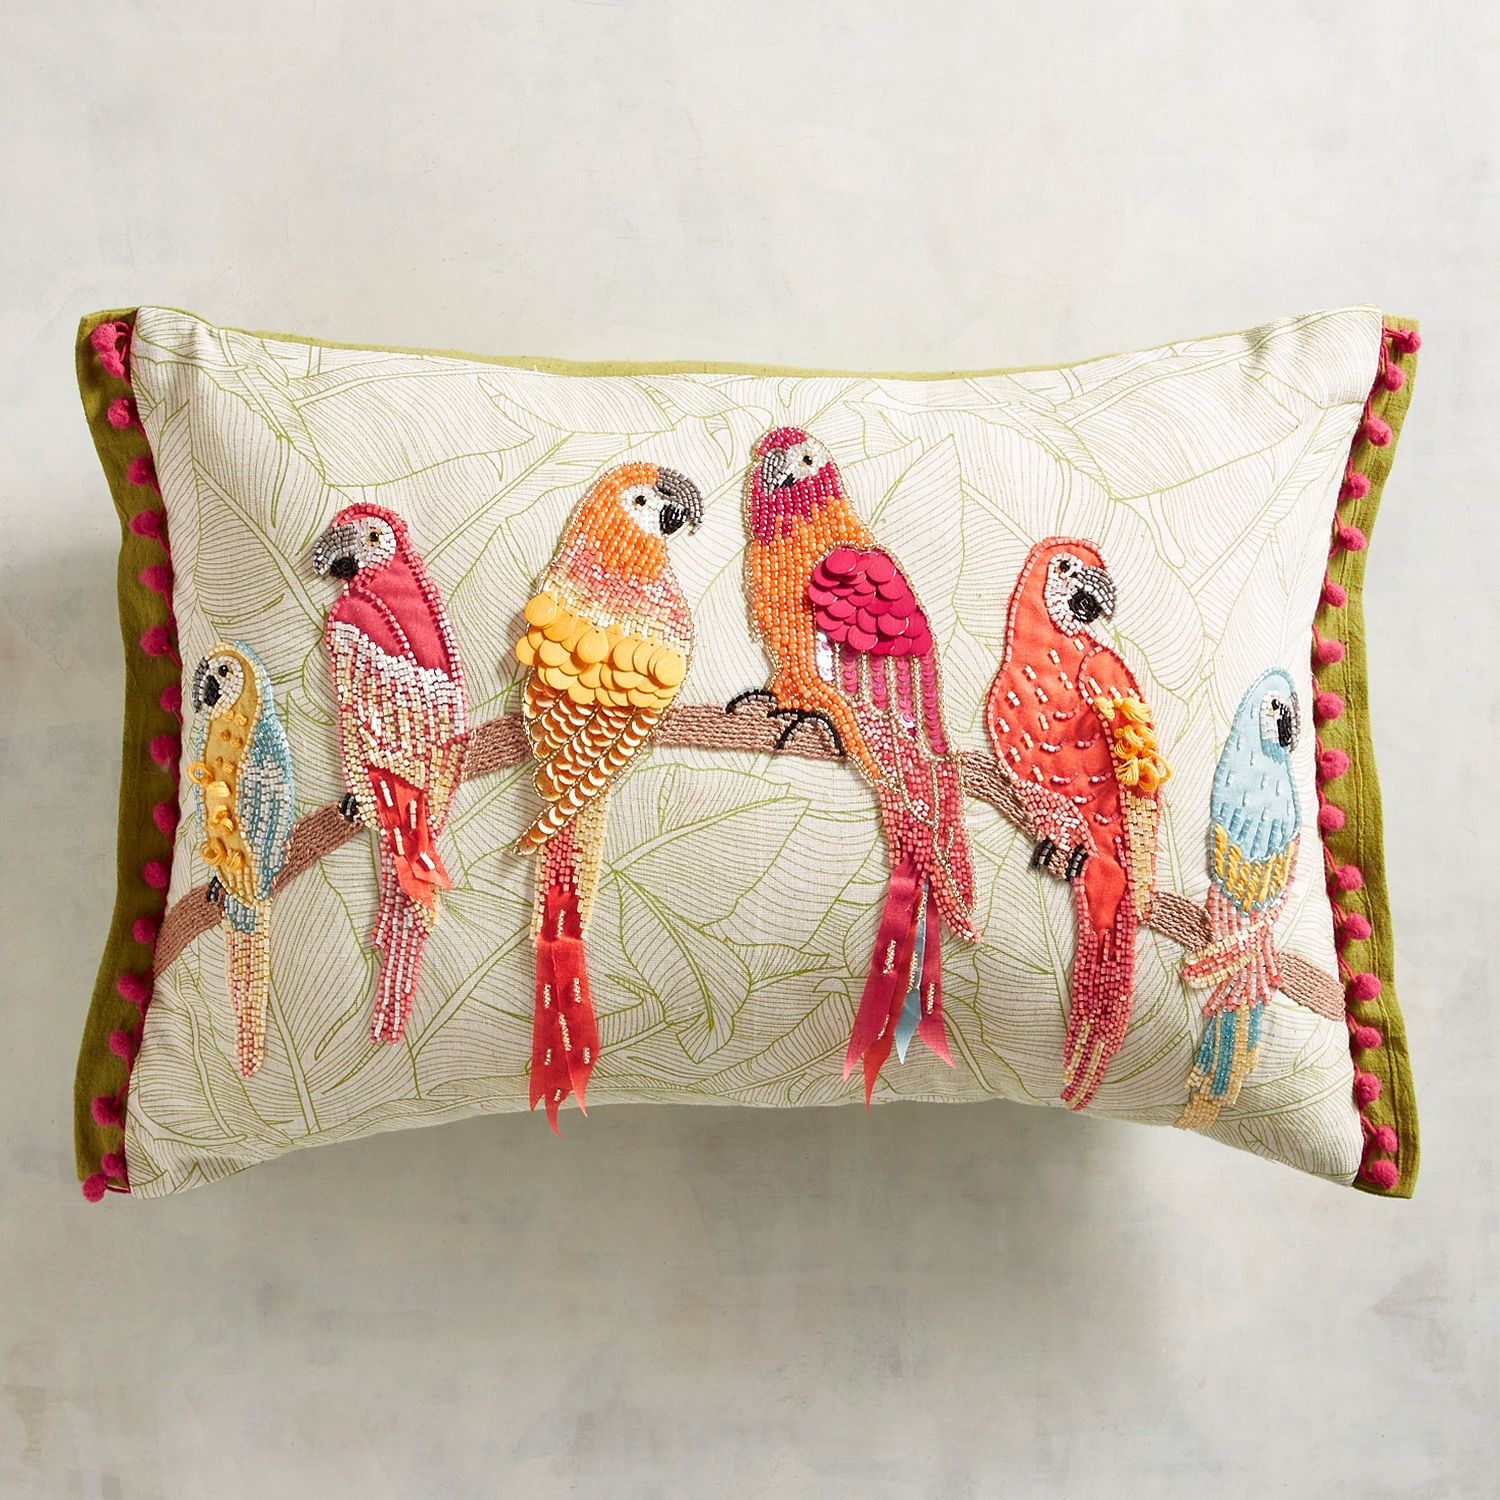 Pier 1 Imports Throw Pillow Embroidered Parrots Cream Tropical 18 x 18 New